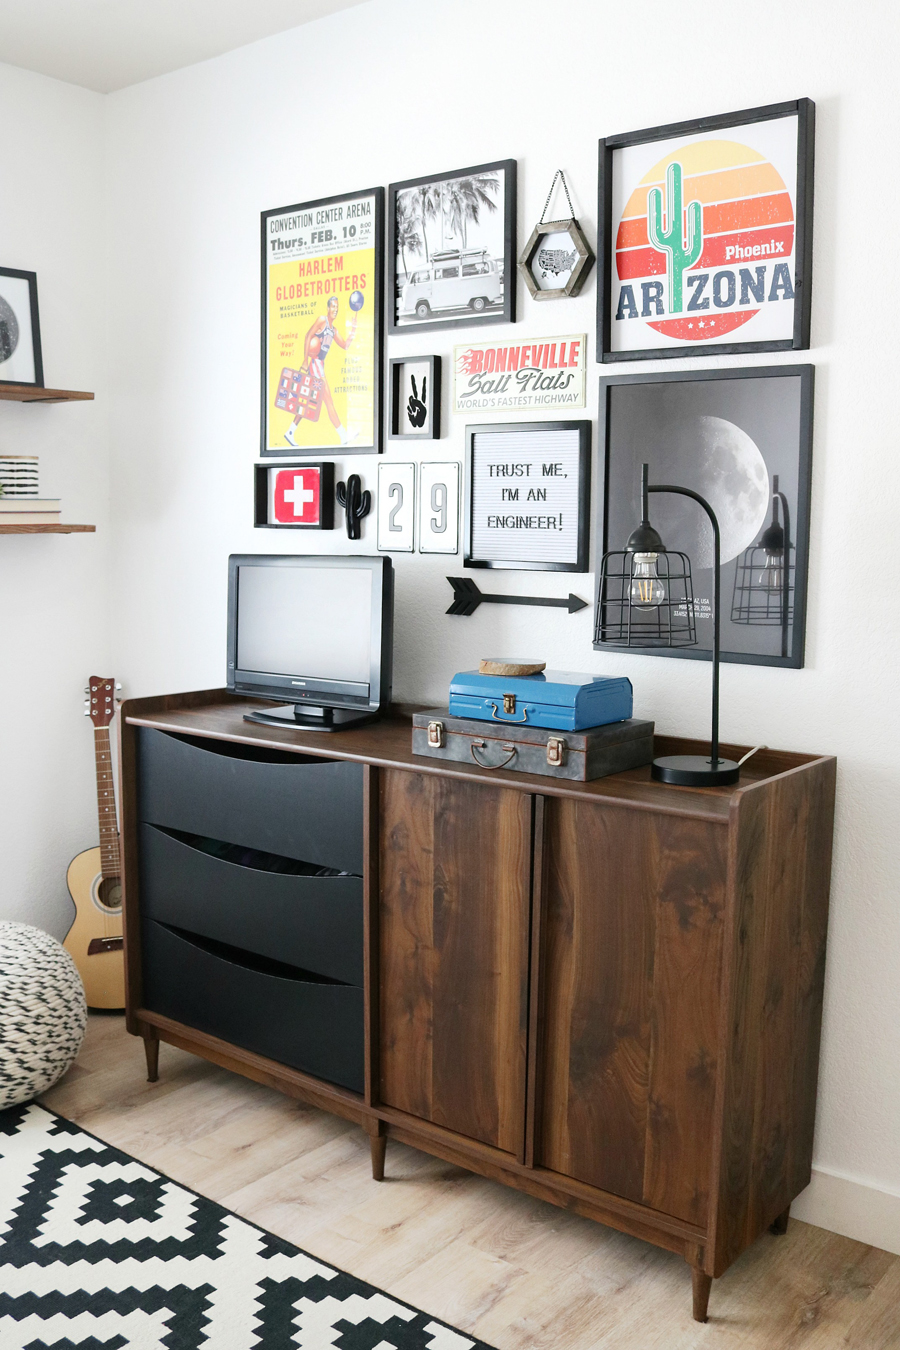 Teen Boy's Room Storage Solutions - Use a credenza with drawers and cabinet doors for function and stylish storage.